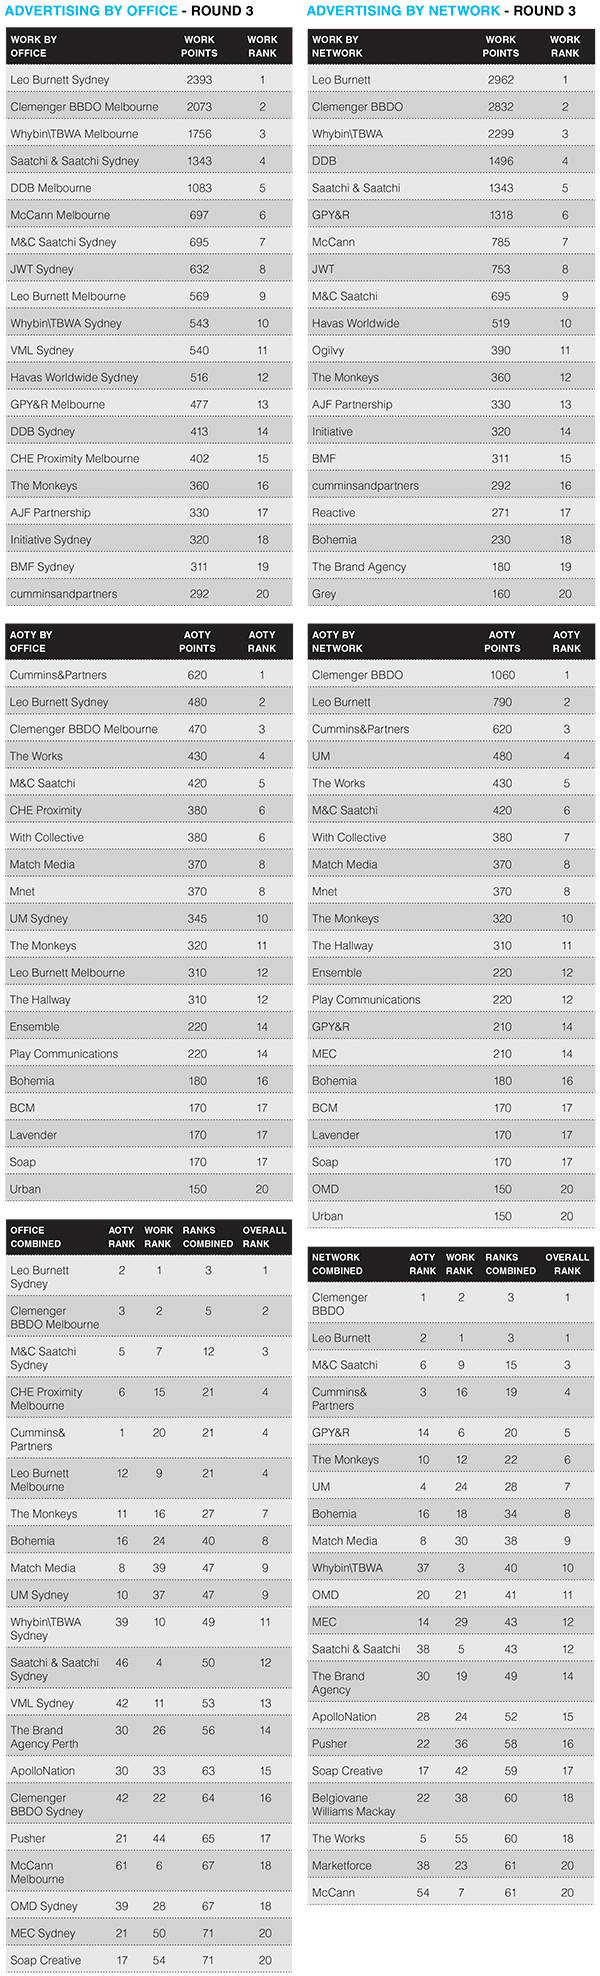 advertising rankings 2014